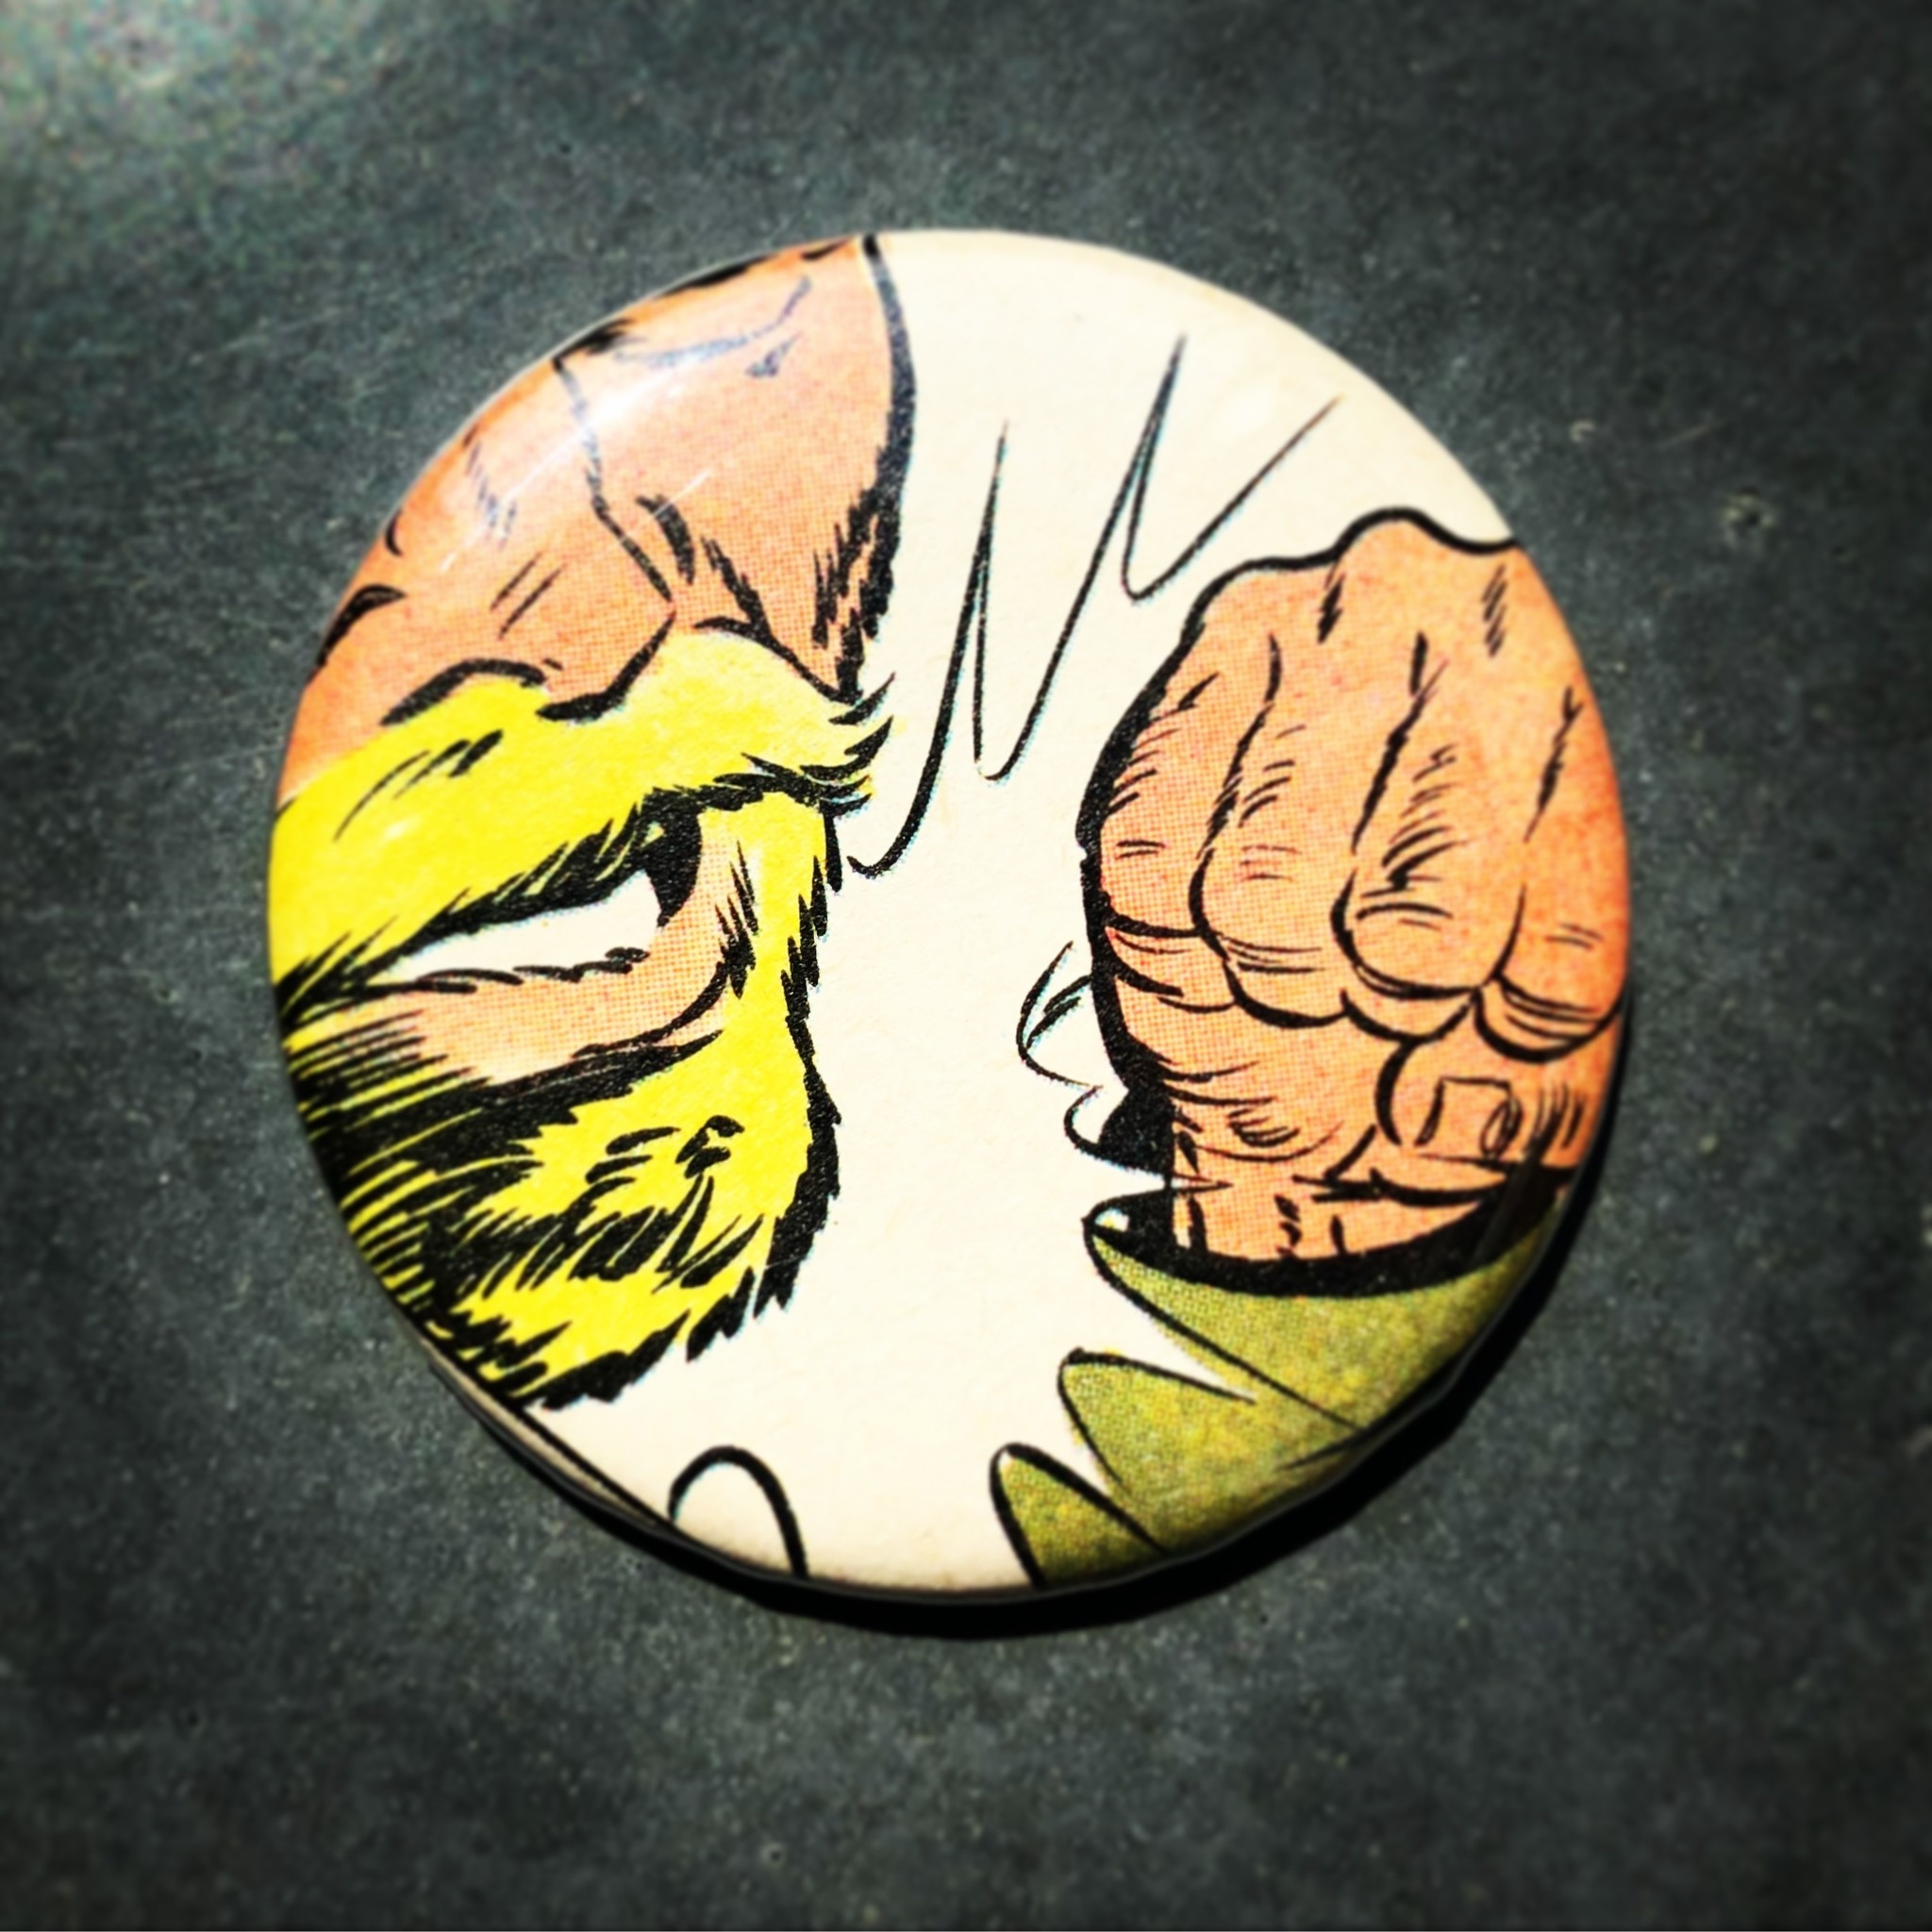 Knock out magnet button vintage comic